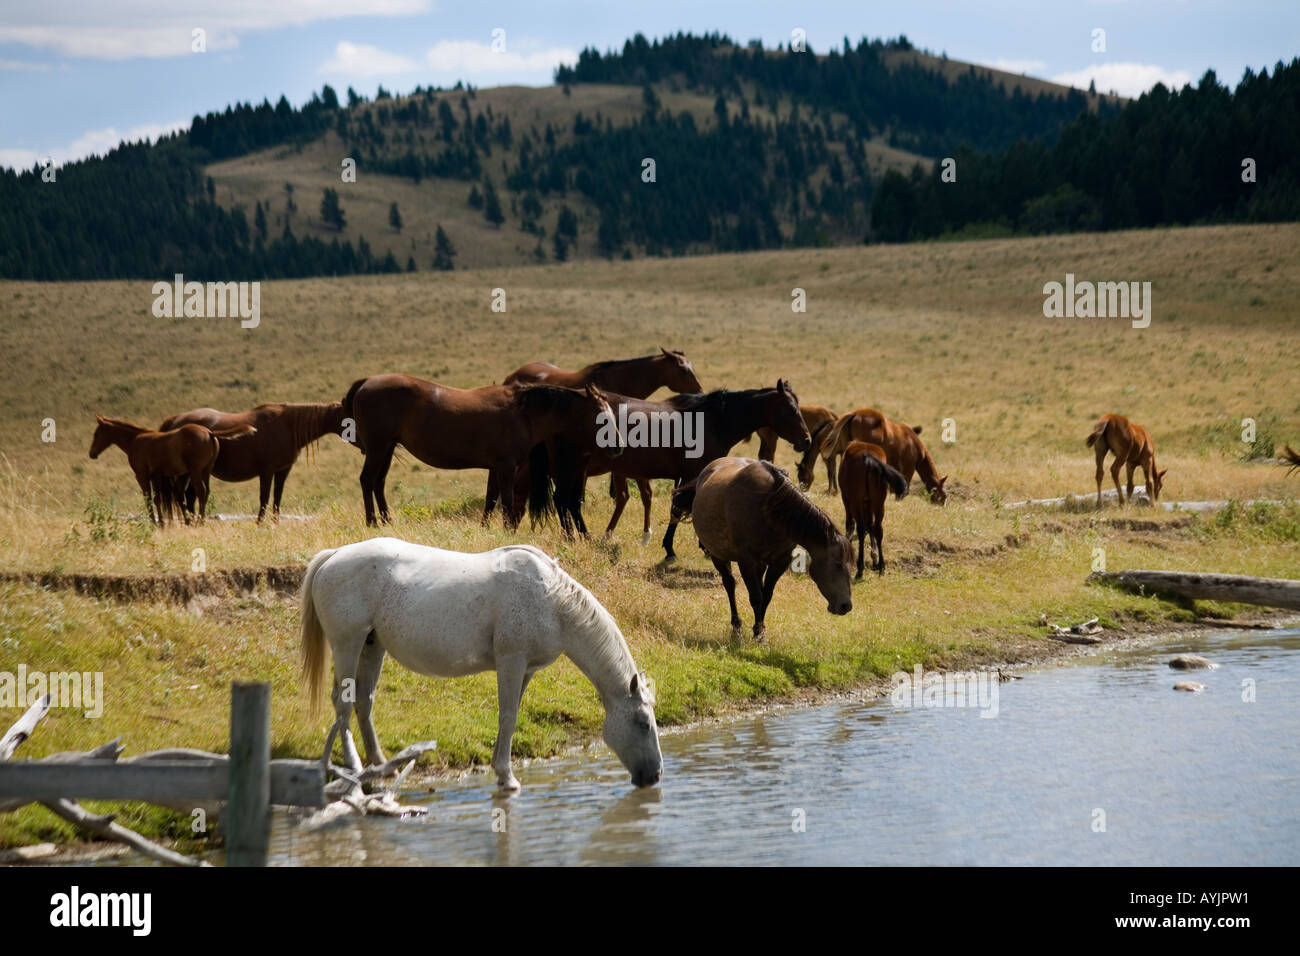 Horses grazing in foothills of the Rocky Mountains Alberta Canada - Stock Image